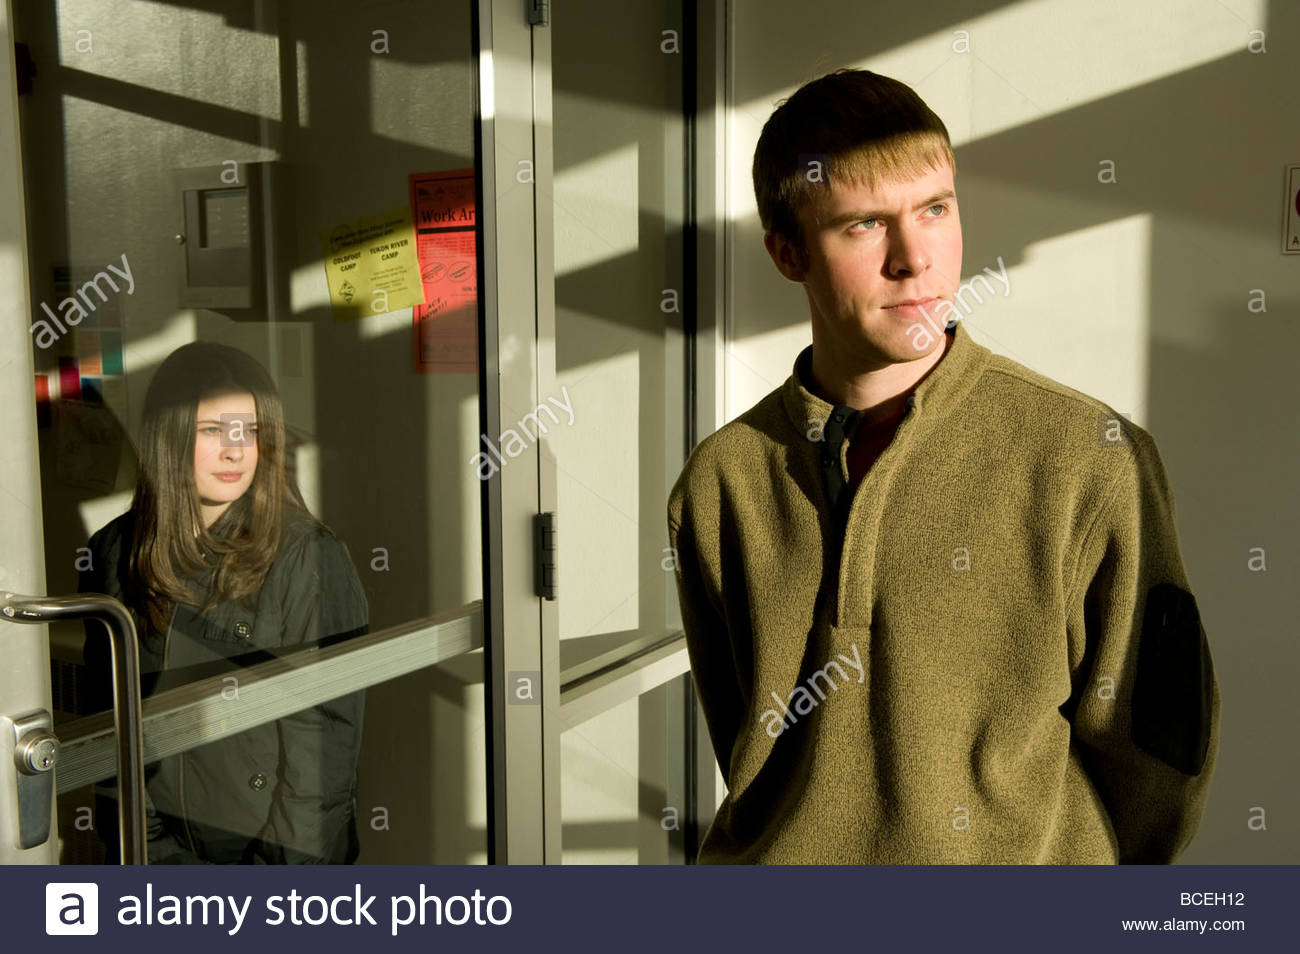 Two young college students gaze off into space. - Stock Image